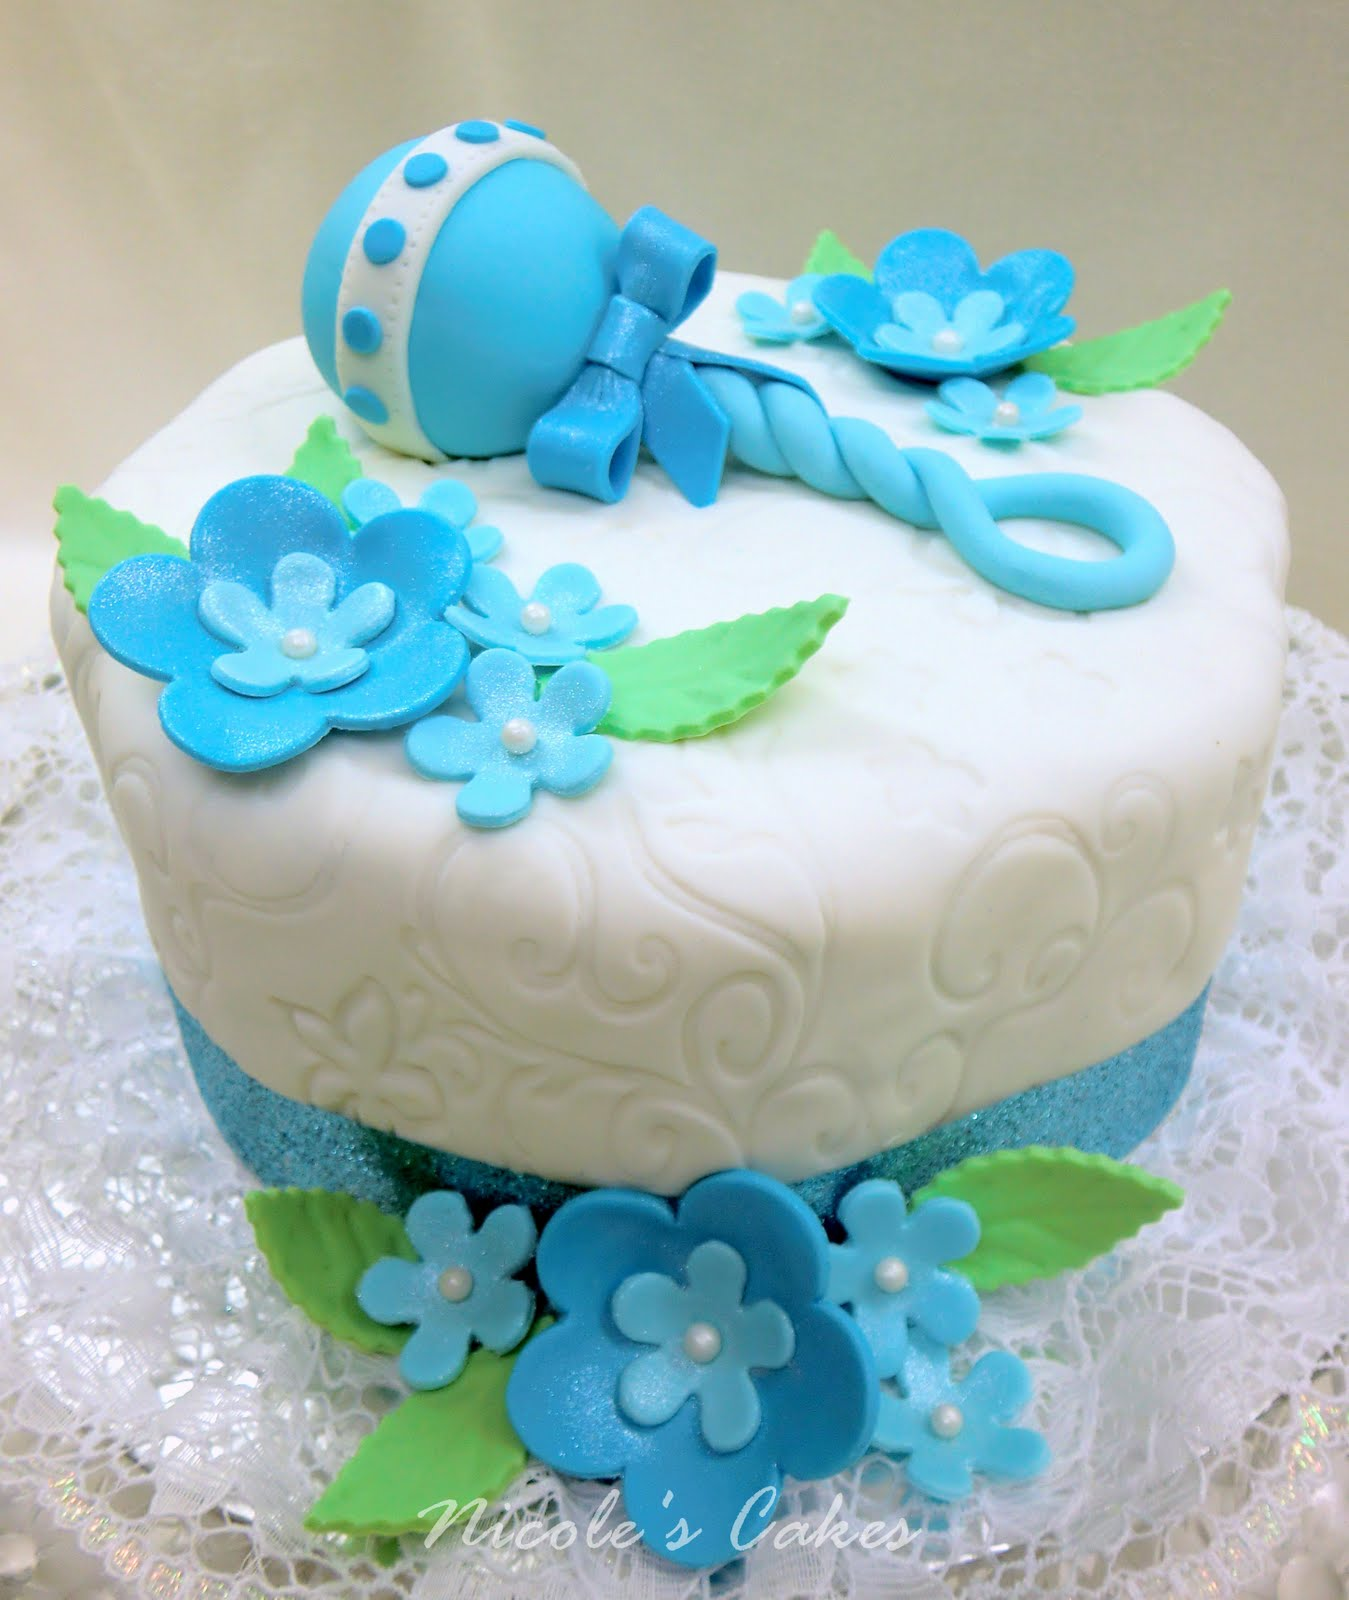 Baby Shower Cakes: Beautiful Boy Baby Shower Cakes